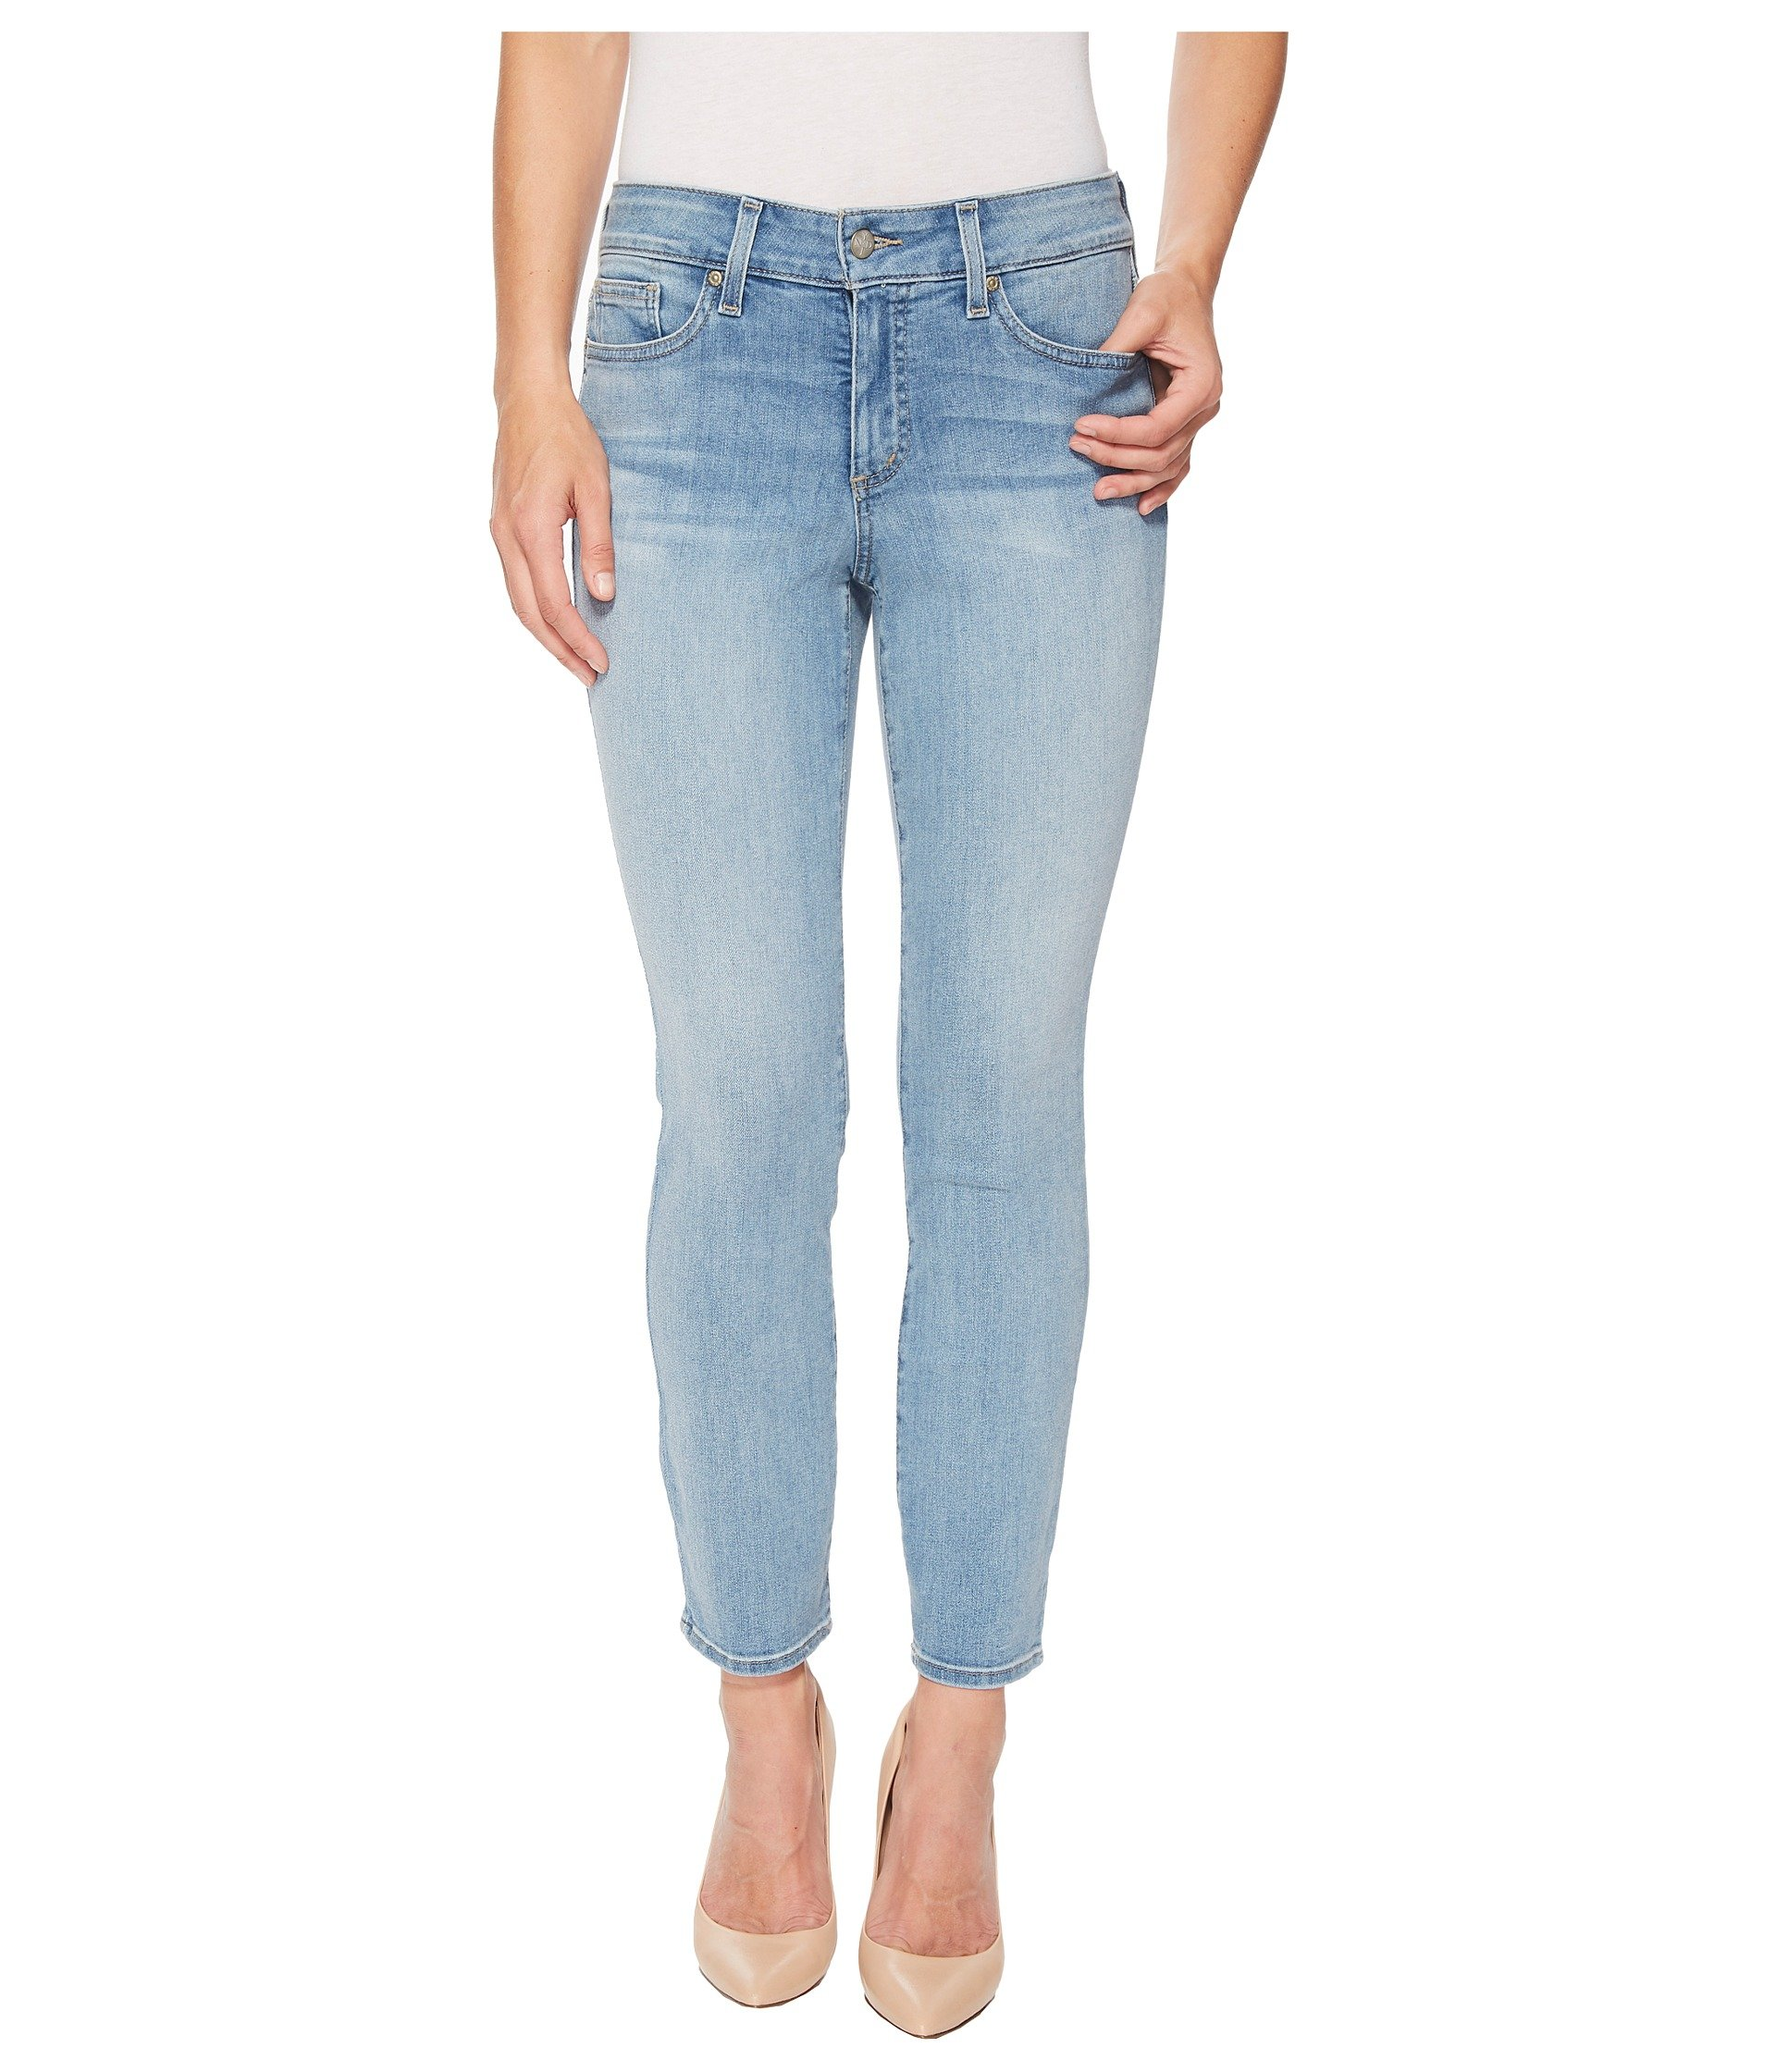 NYDJ Women's Petite Size Alina Ankle Jeans, Dreamstate, 14P